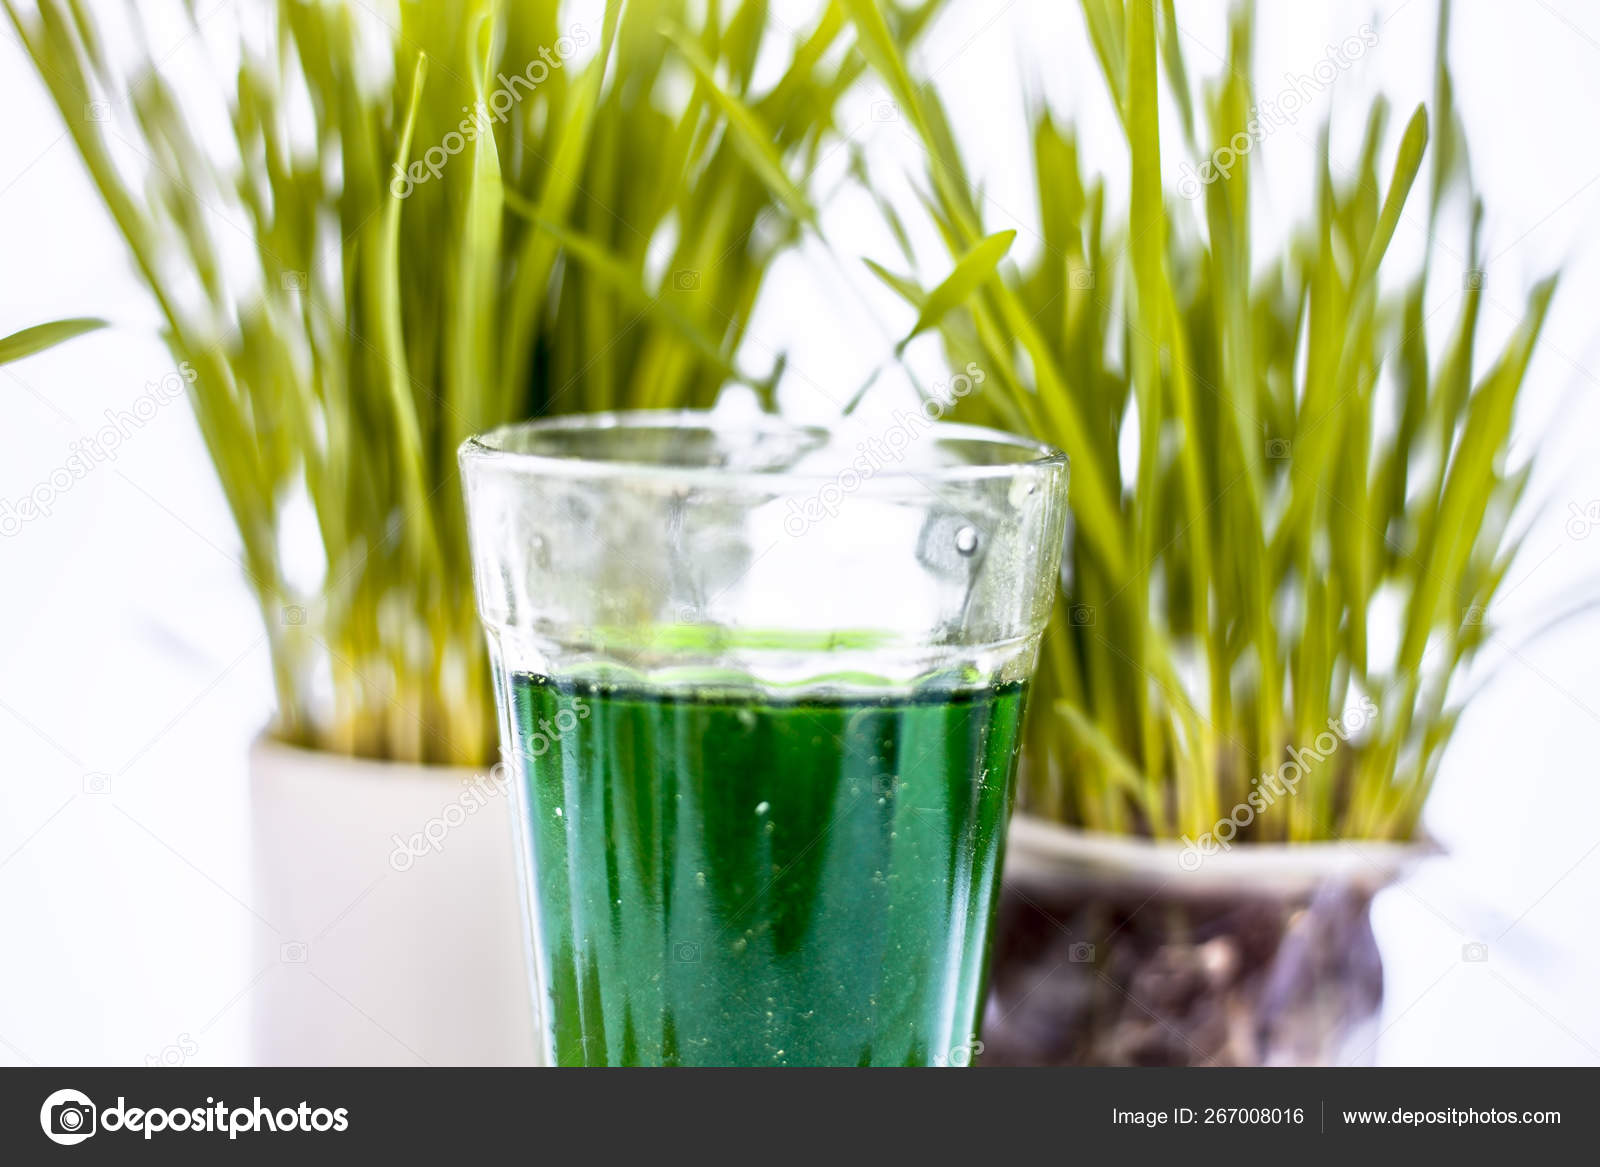 Plant De Menthe En Pot close two small pots containing wheat grass them isolated